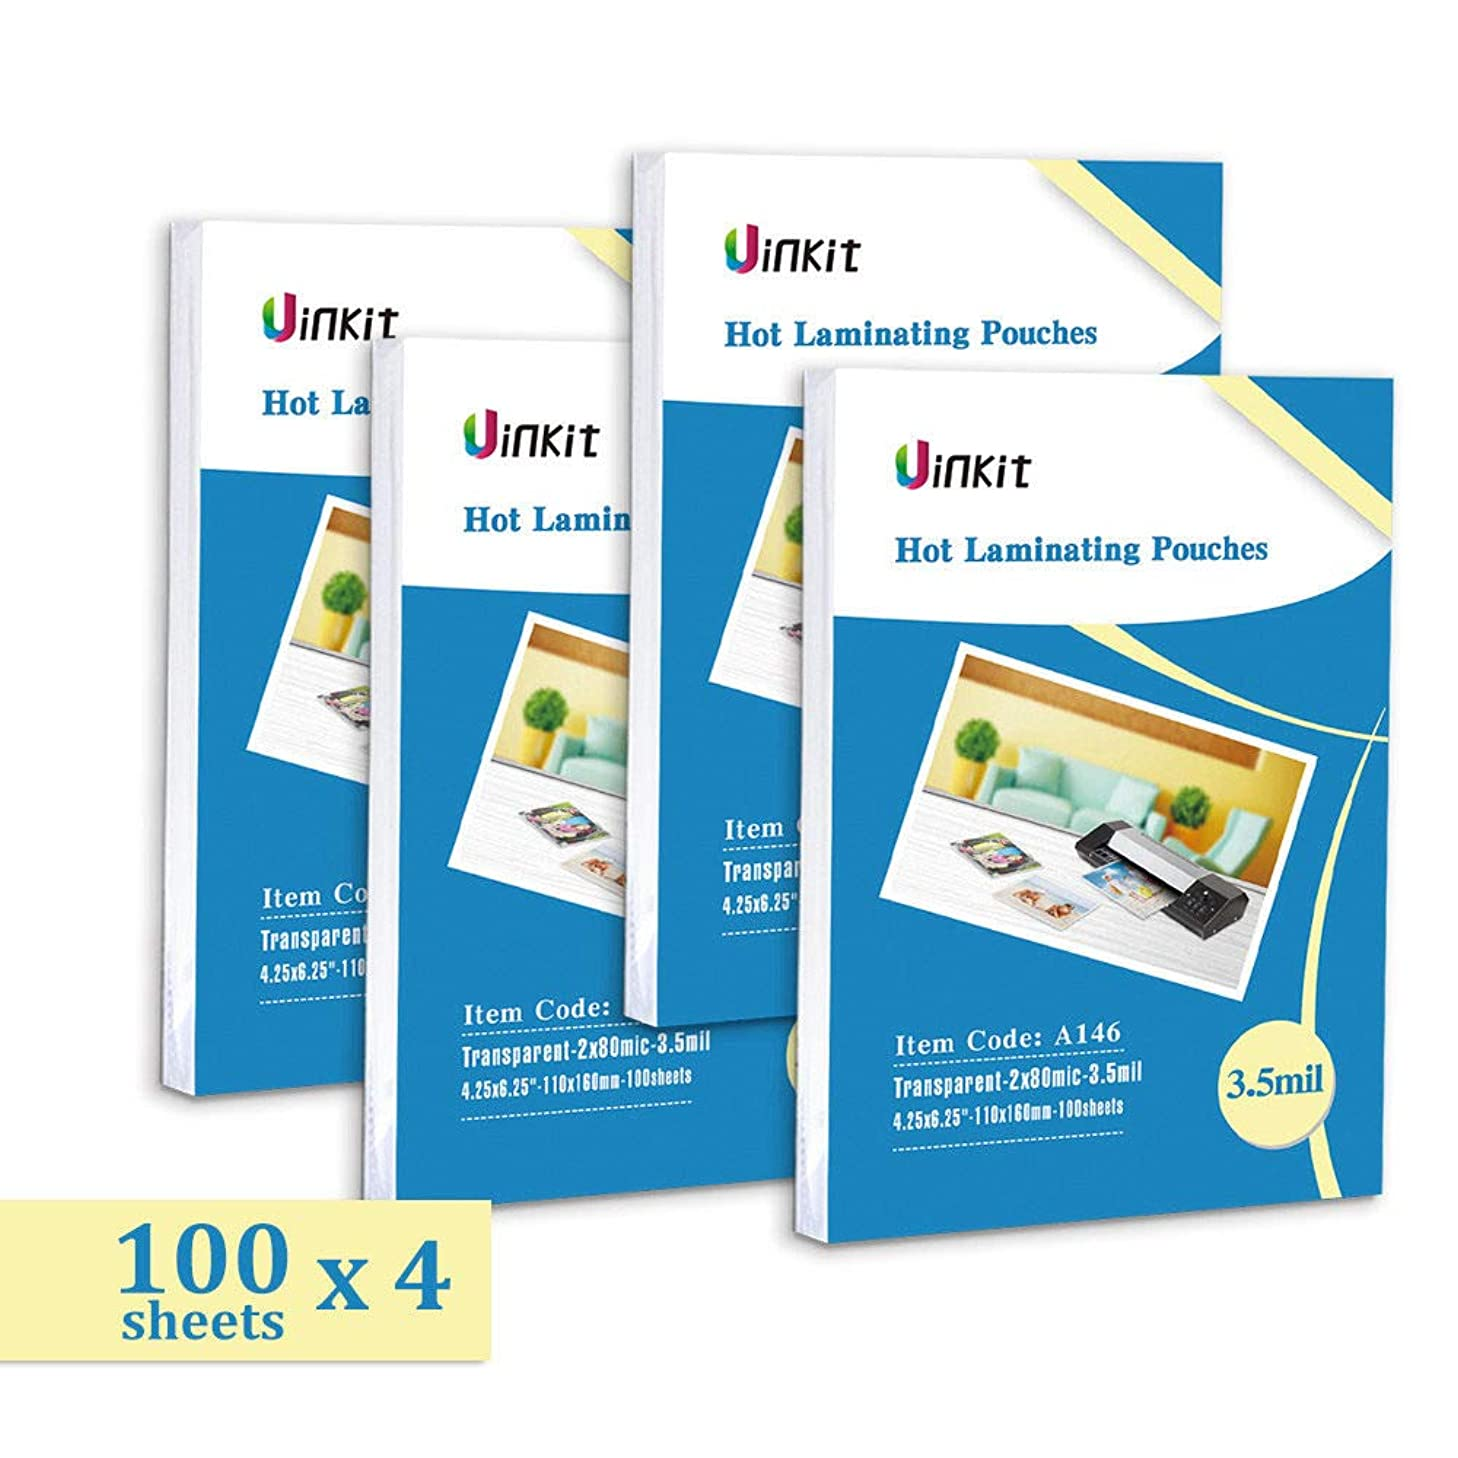 Hot Thermal Laminating Pouches 4.25x6.25-400 Sheets 3.5Mil for Sealed 4x6 Inches Photo Uinkit